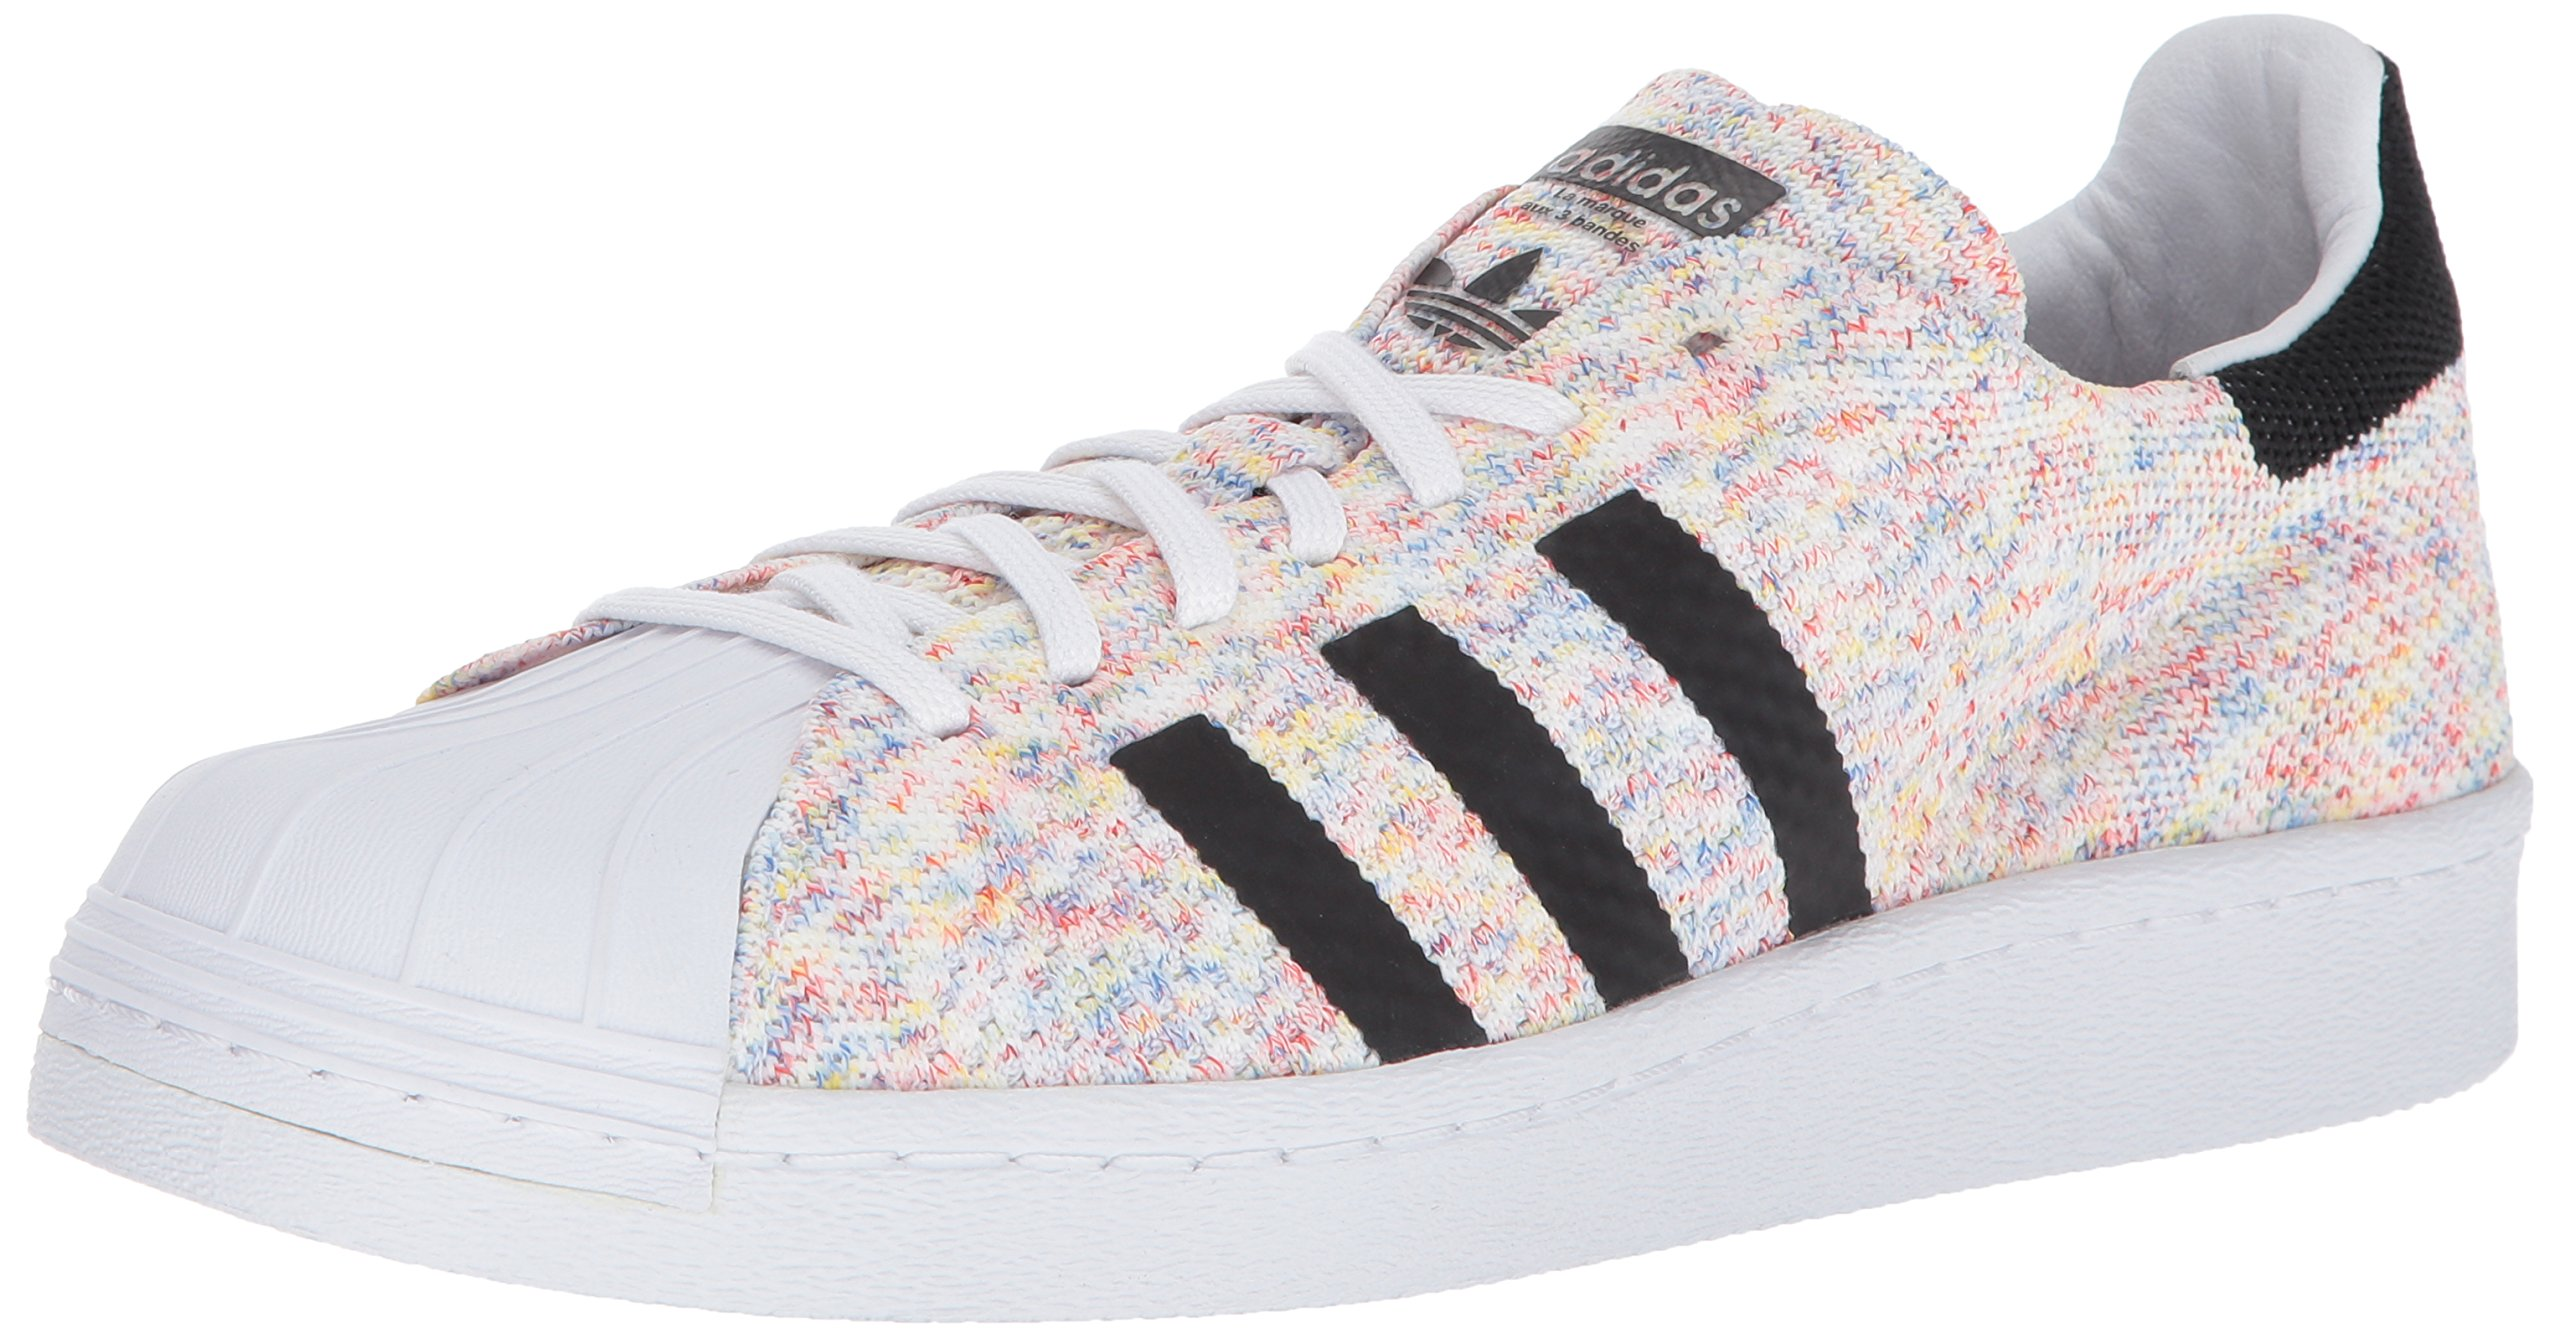 adidas Originals Men's Shoes | Superstar 80s PK, Ftwwht/Ftwwht/Cblack, (10.5 M US)